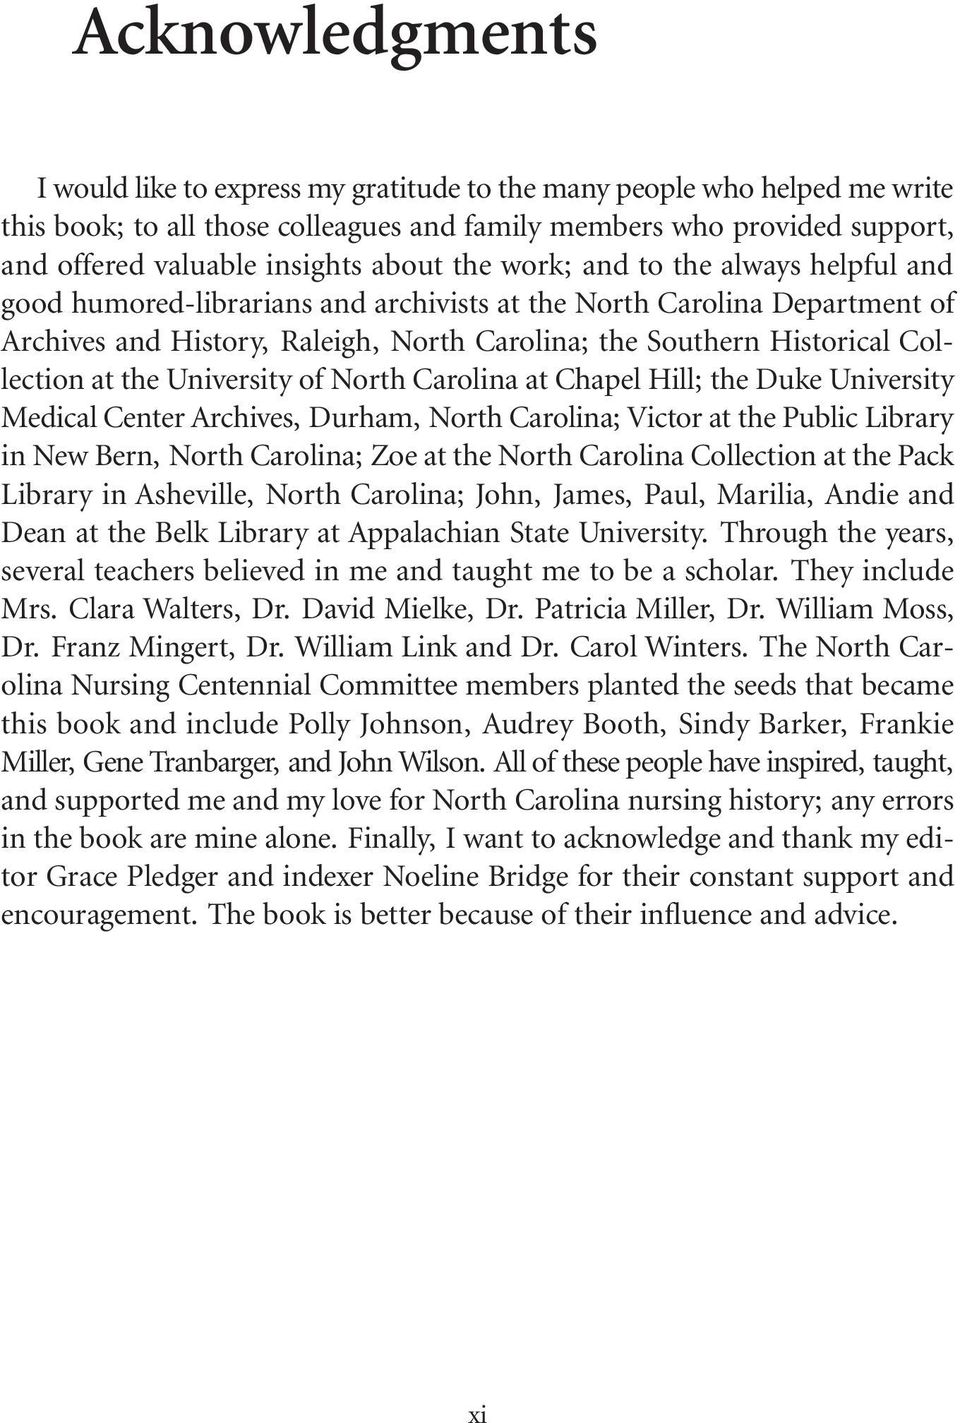 Collection at the University of North Carolina at Chapel Hill; the Duke University Medical Center Archives, Durham, North Carolina; Victor at the Public Library in New Bern, North Carolina; Zoe at